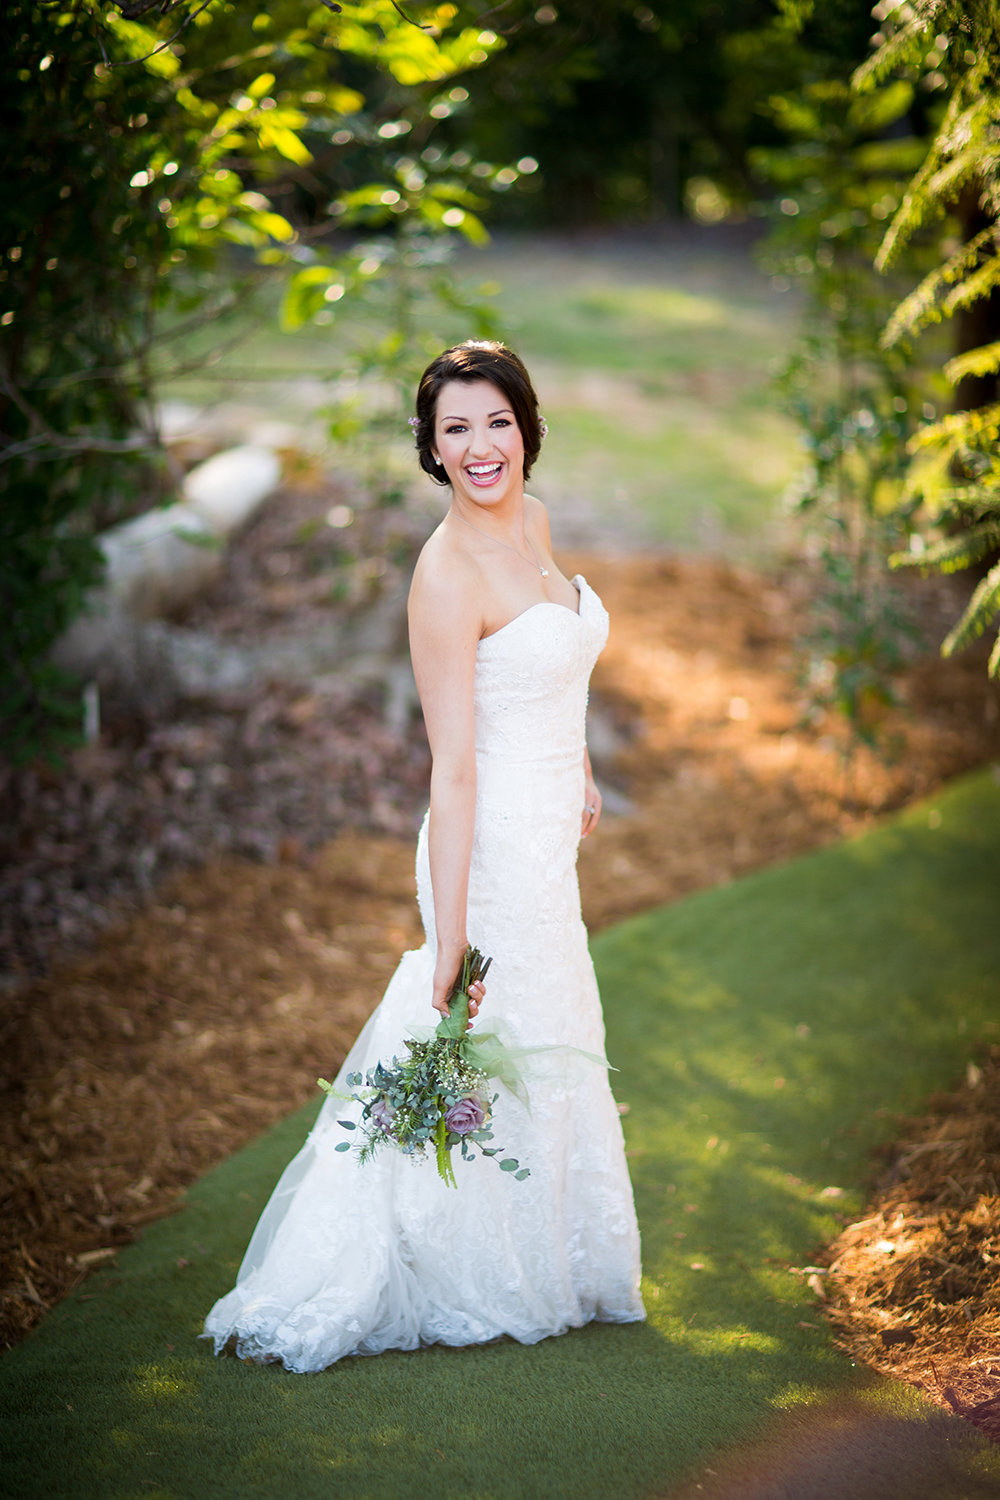 Ethereal Resort wedding photos beautiful bride outdoors